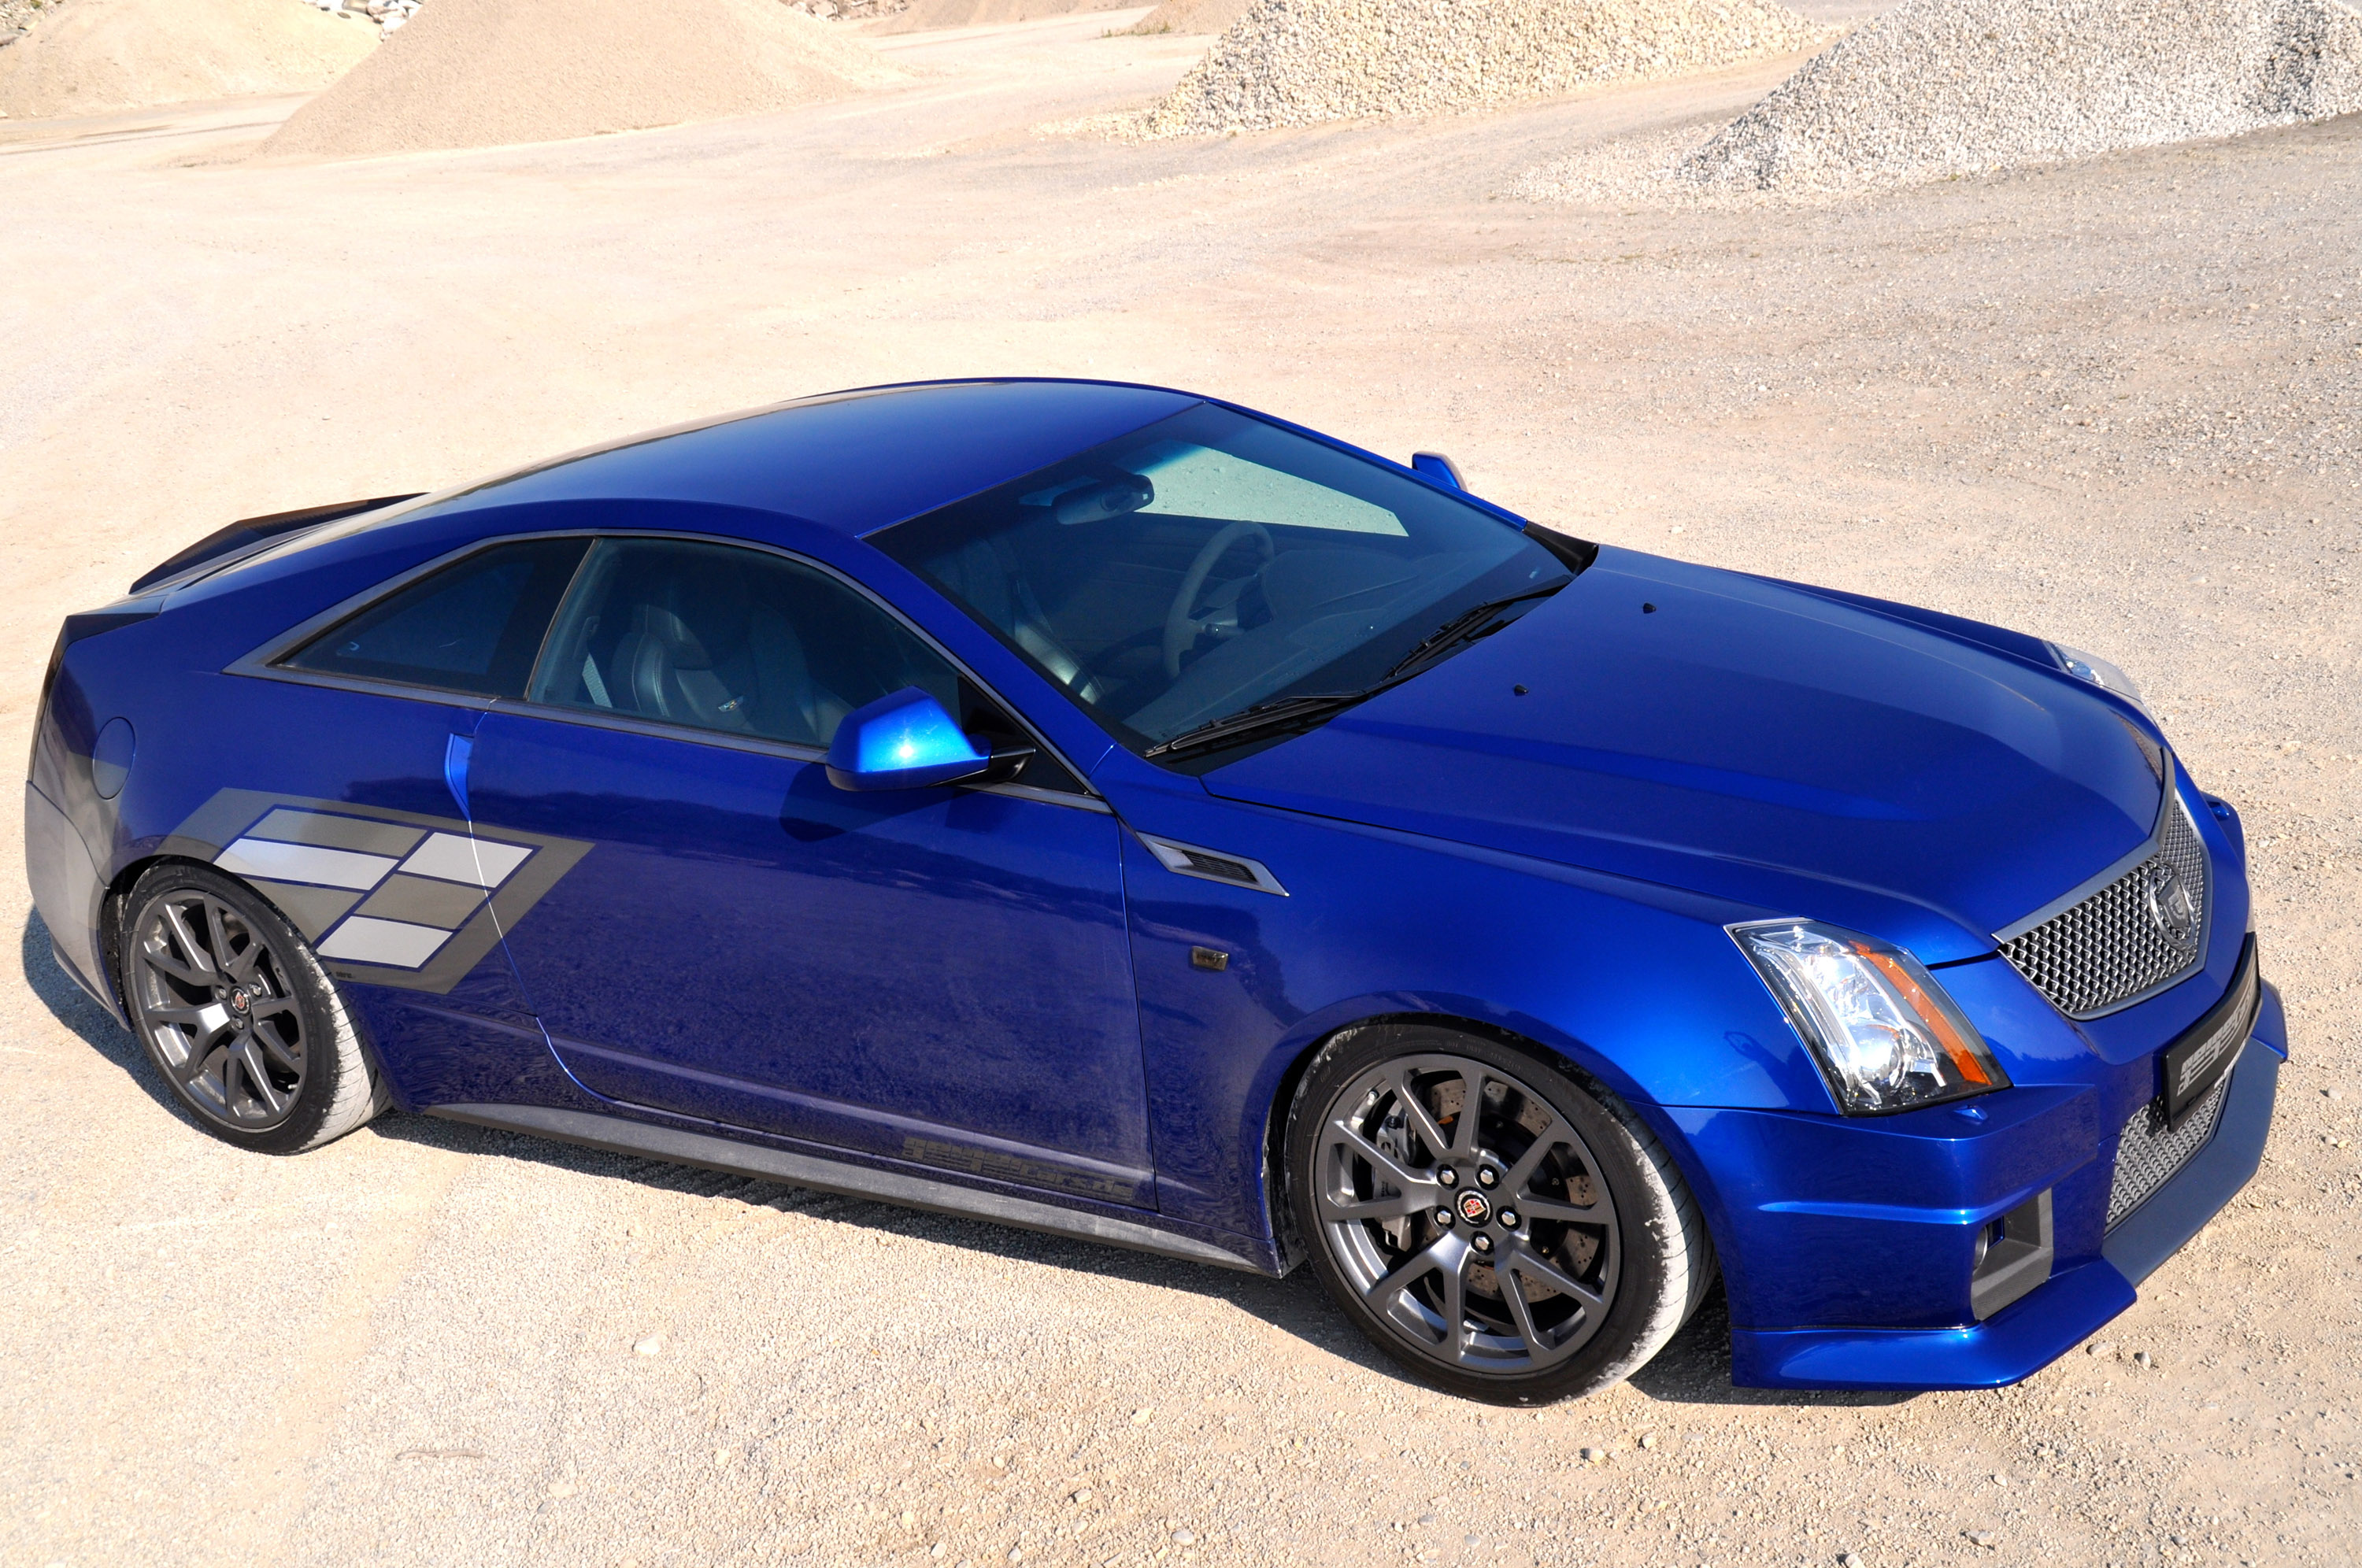 2012 Geigercars Cadillac Cts V Picture 81167